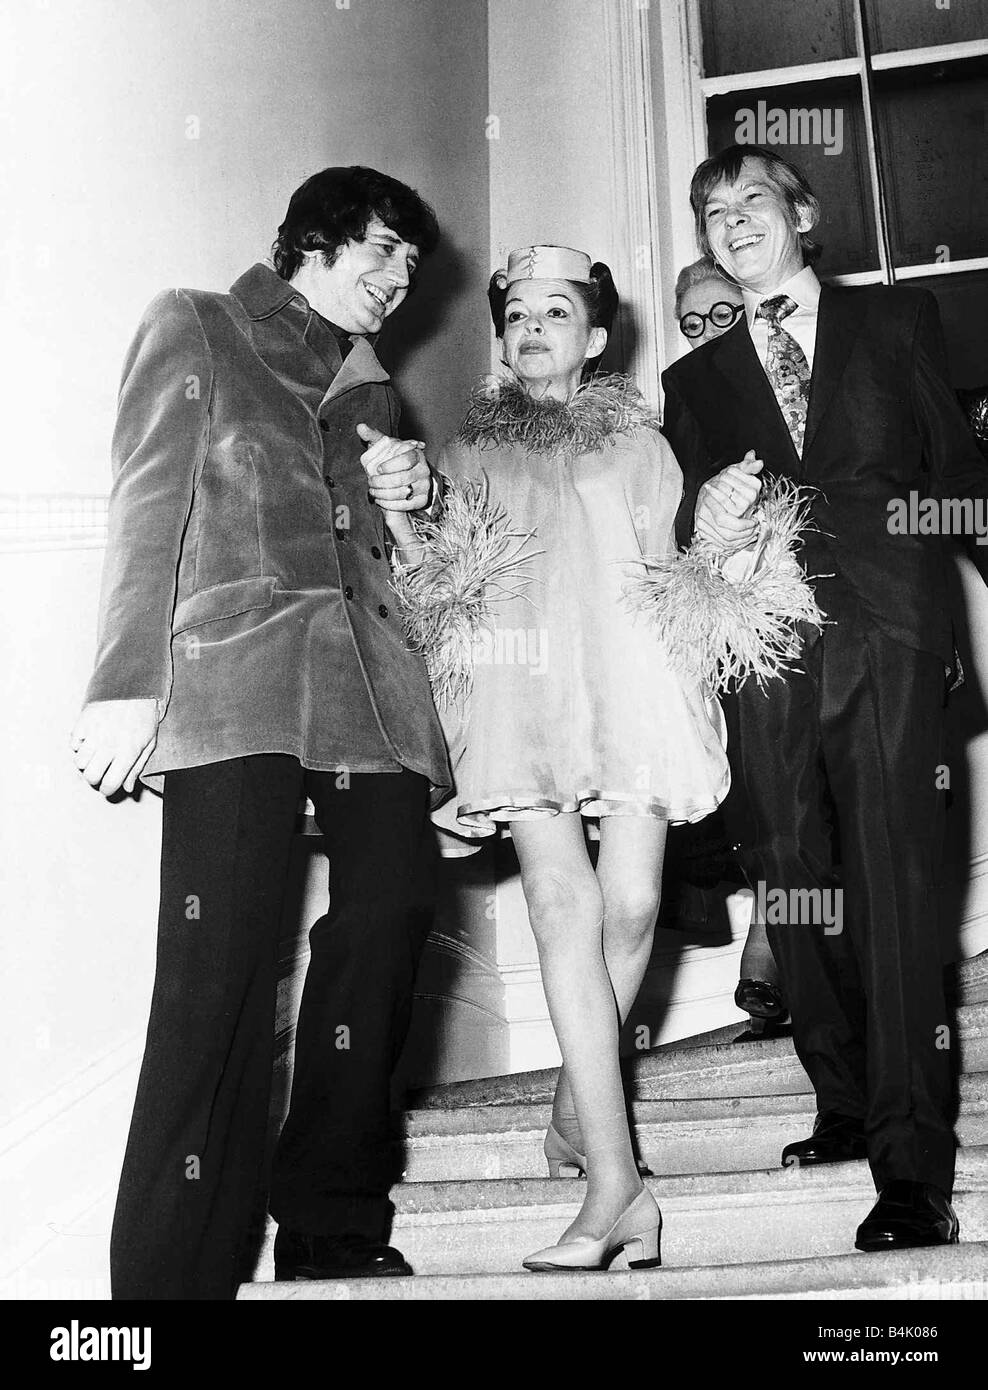 Judy Garland Actress And Her New Husband Mickey Deans Walk Down The Stock Photo Alamy